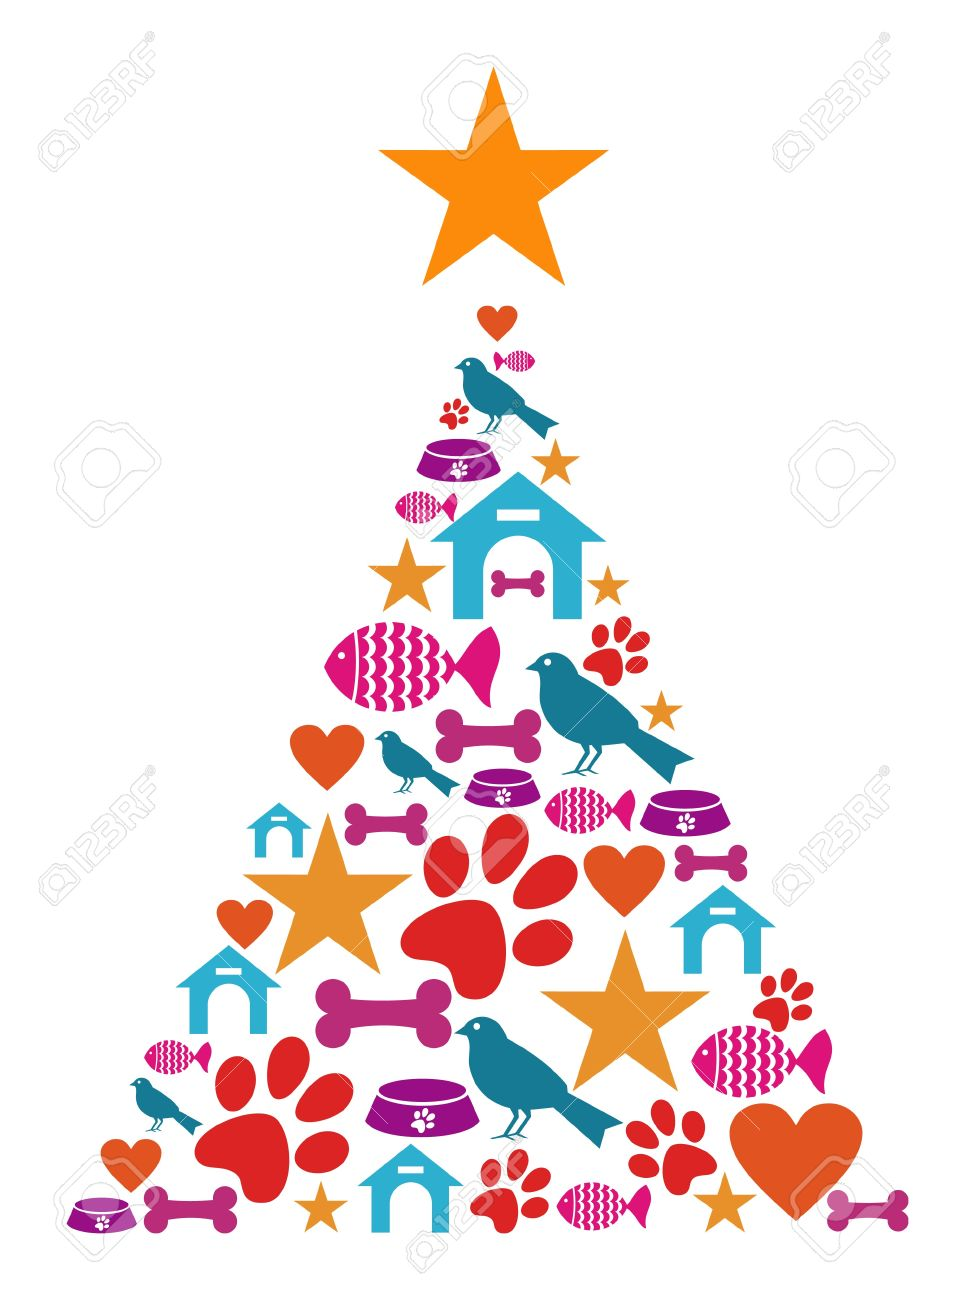 Christmas Tree Shape Made With Pets Icons Set. Royalty Free.